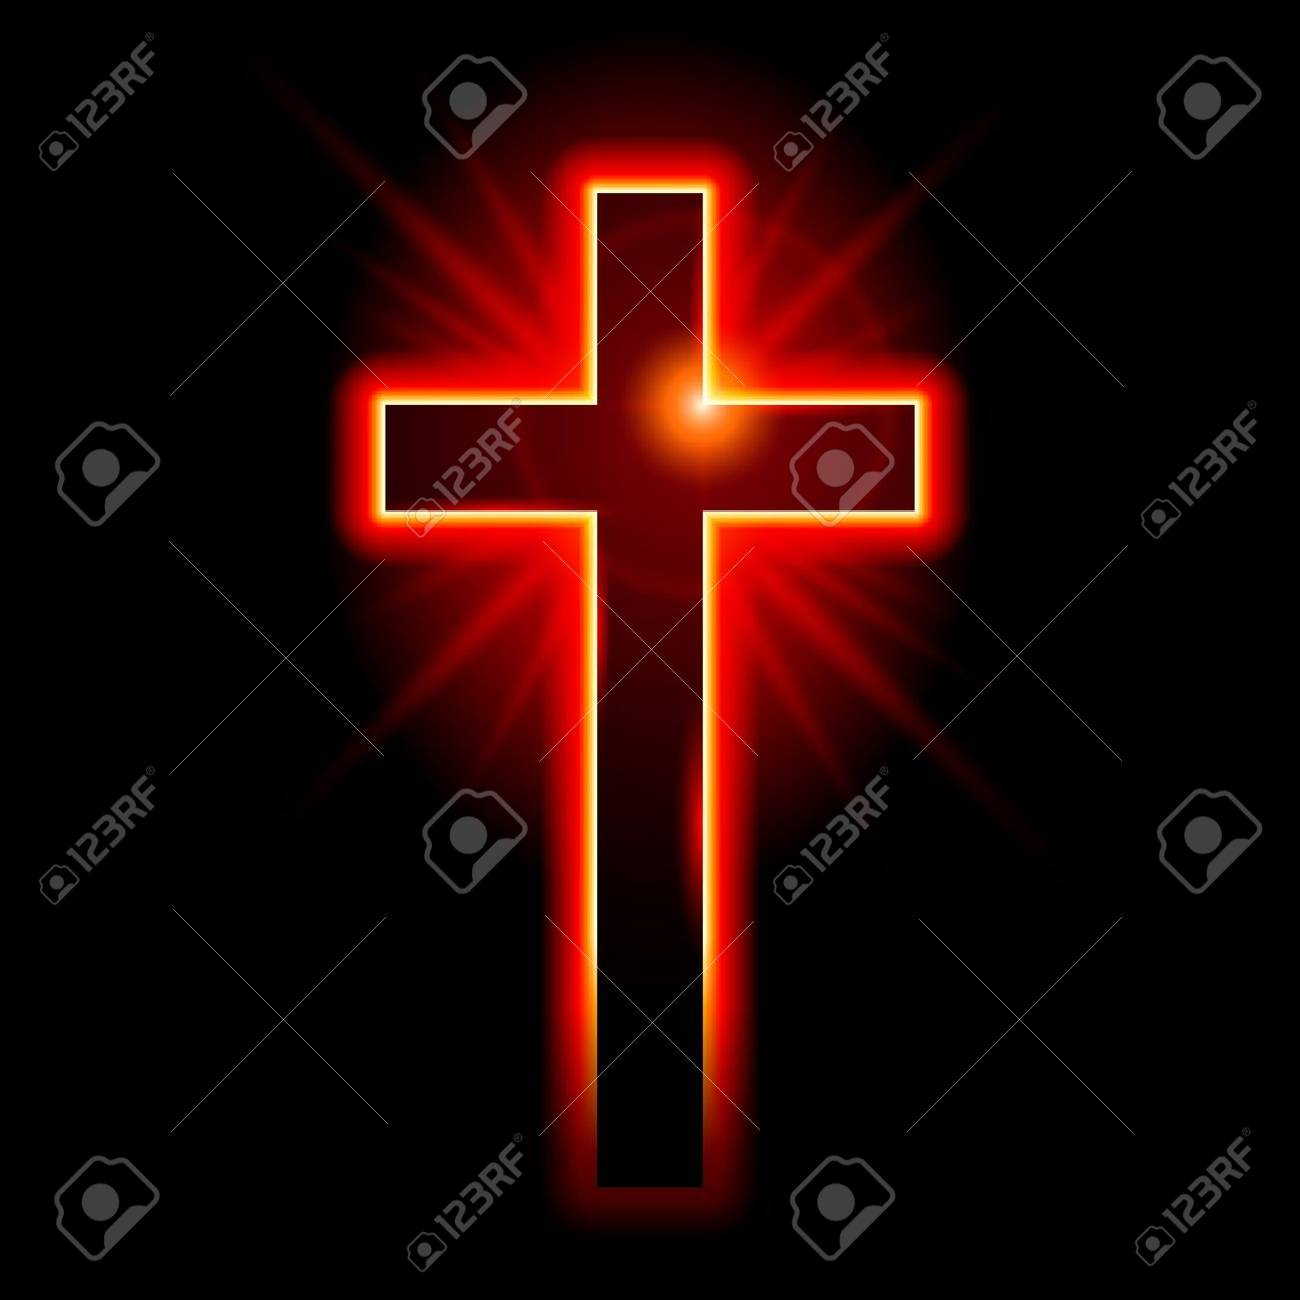 18 593 jesus cross stock vector illustration and royalty free